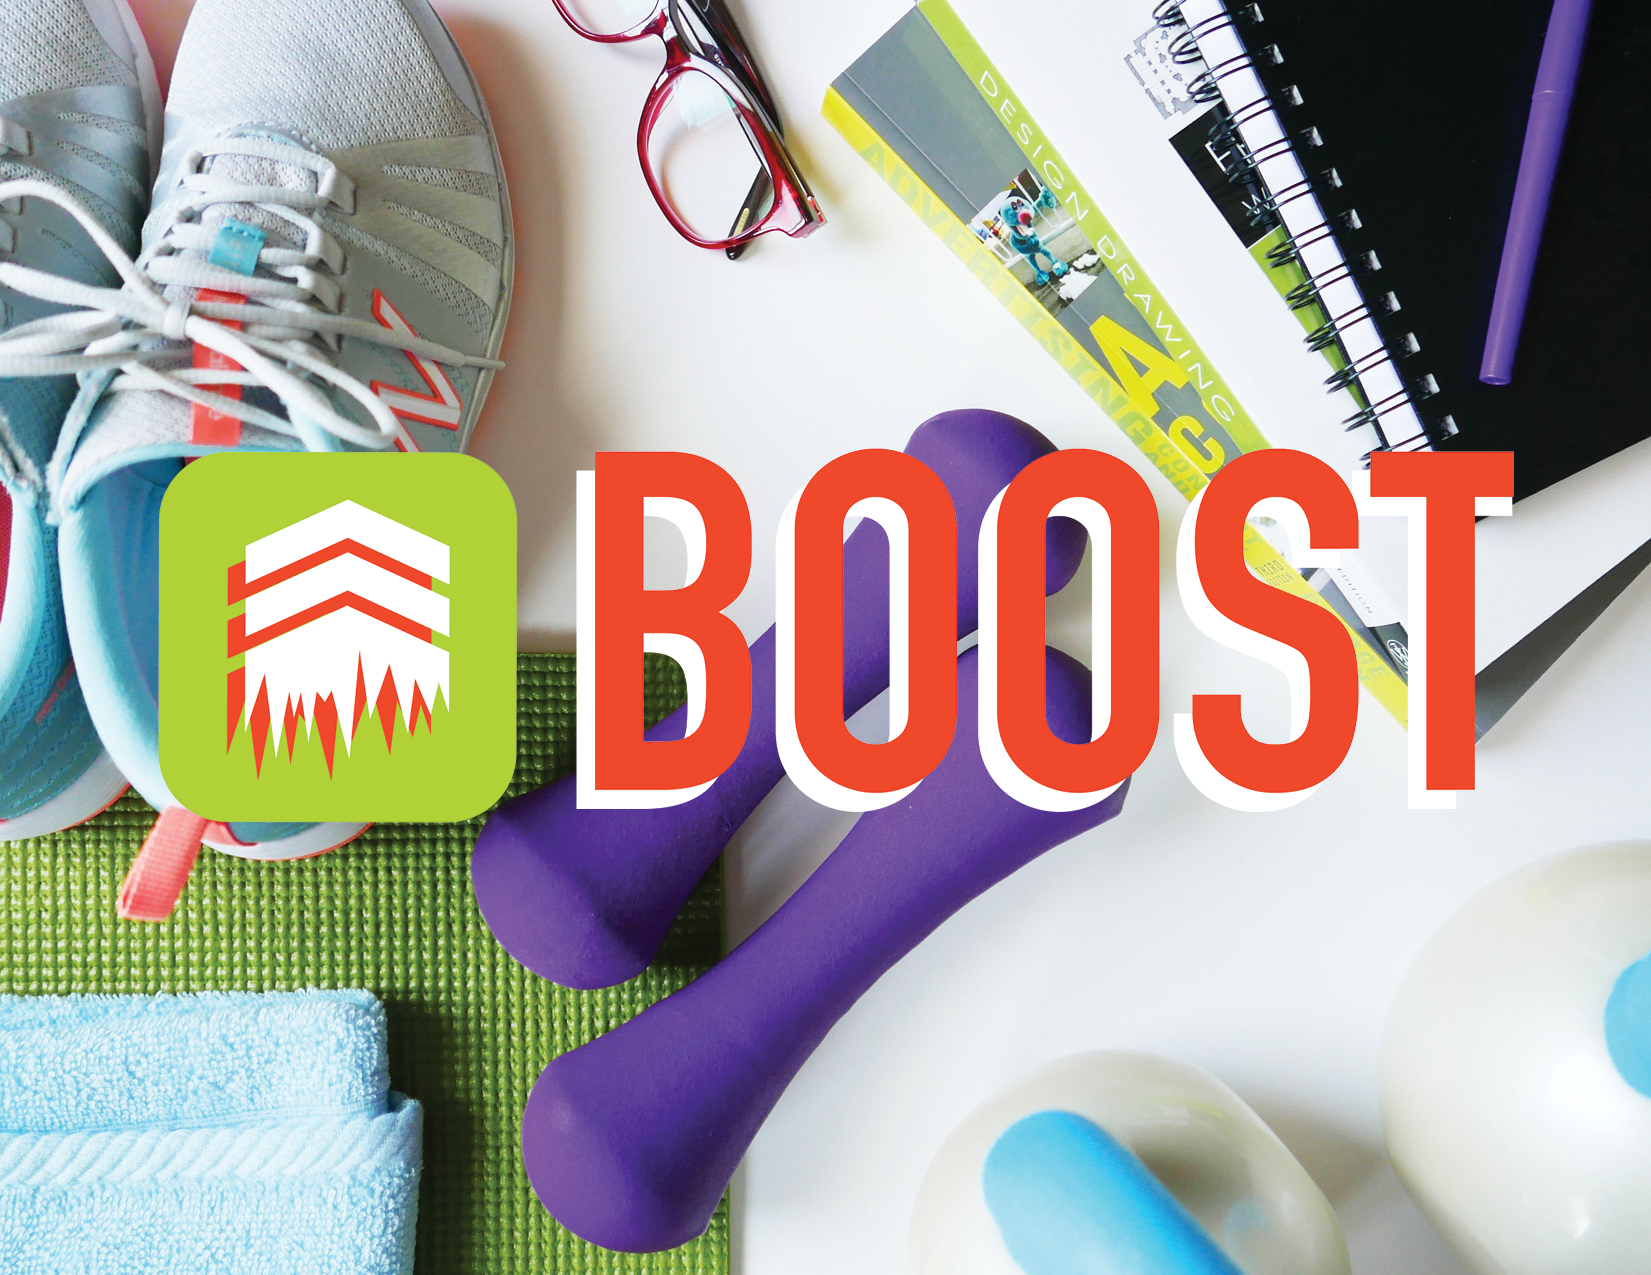 BOOST - App Design & Advertising